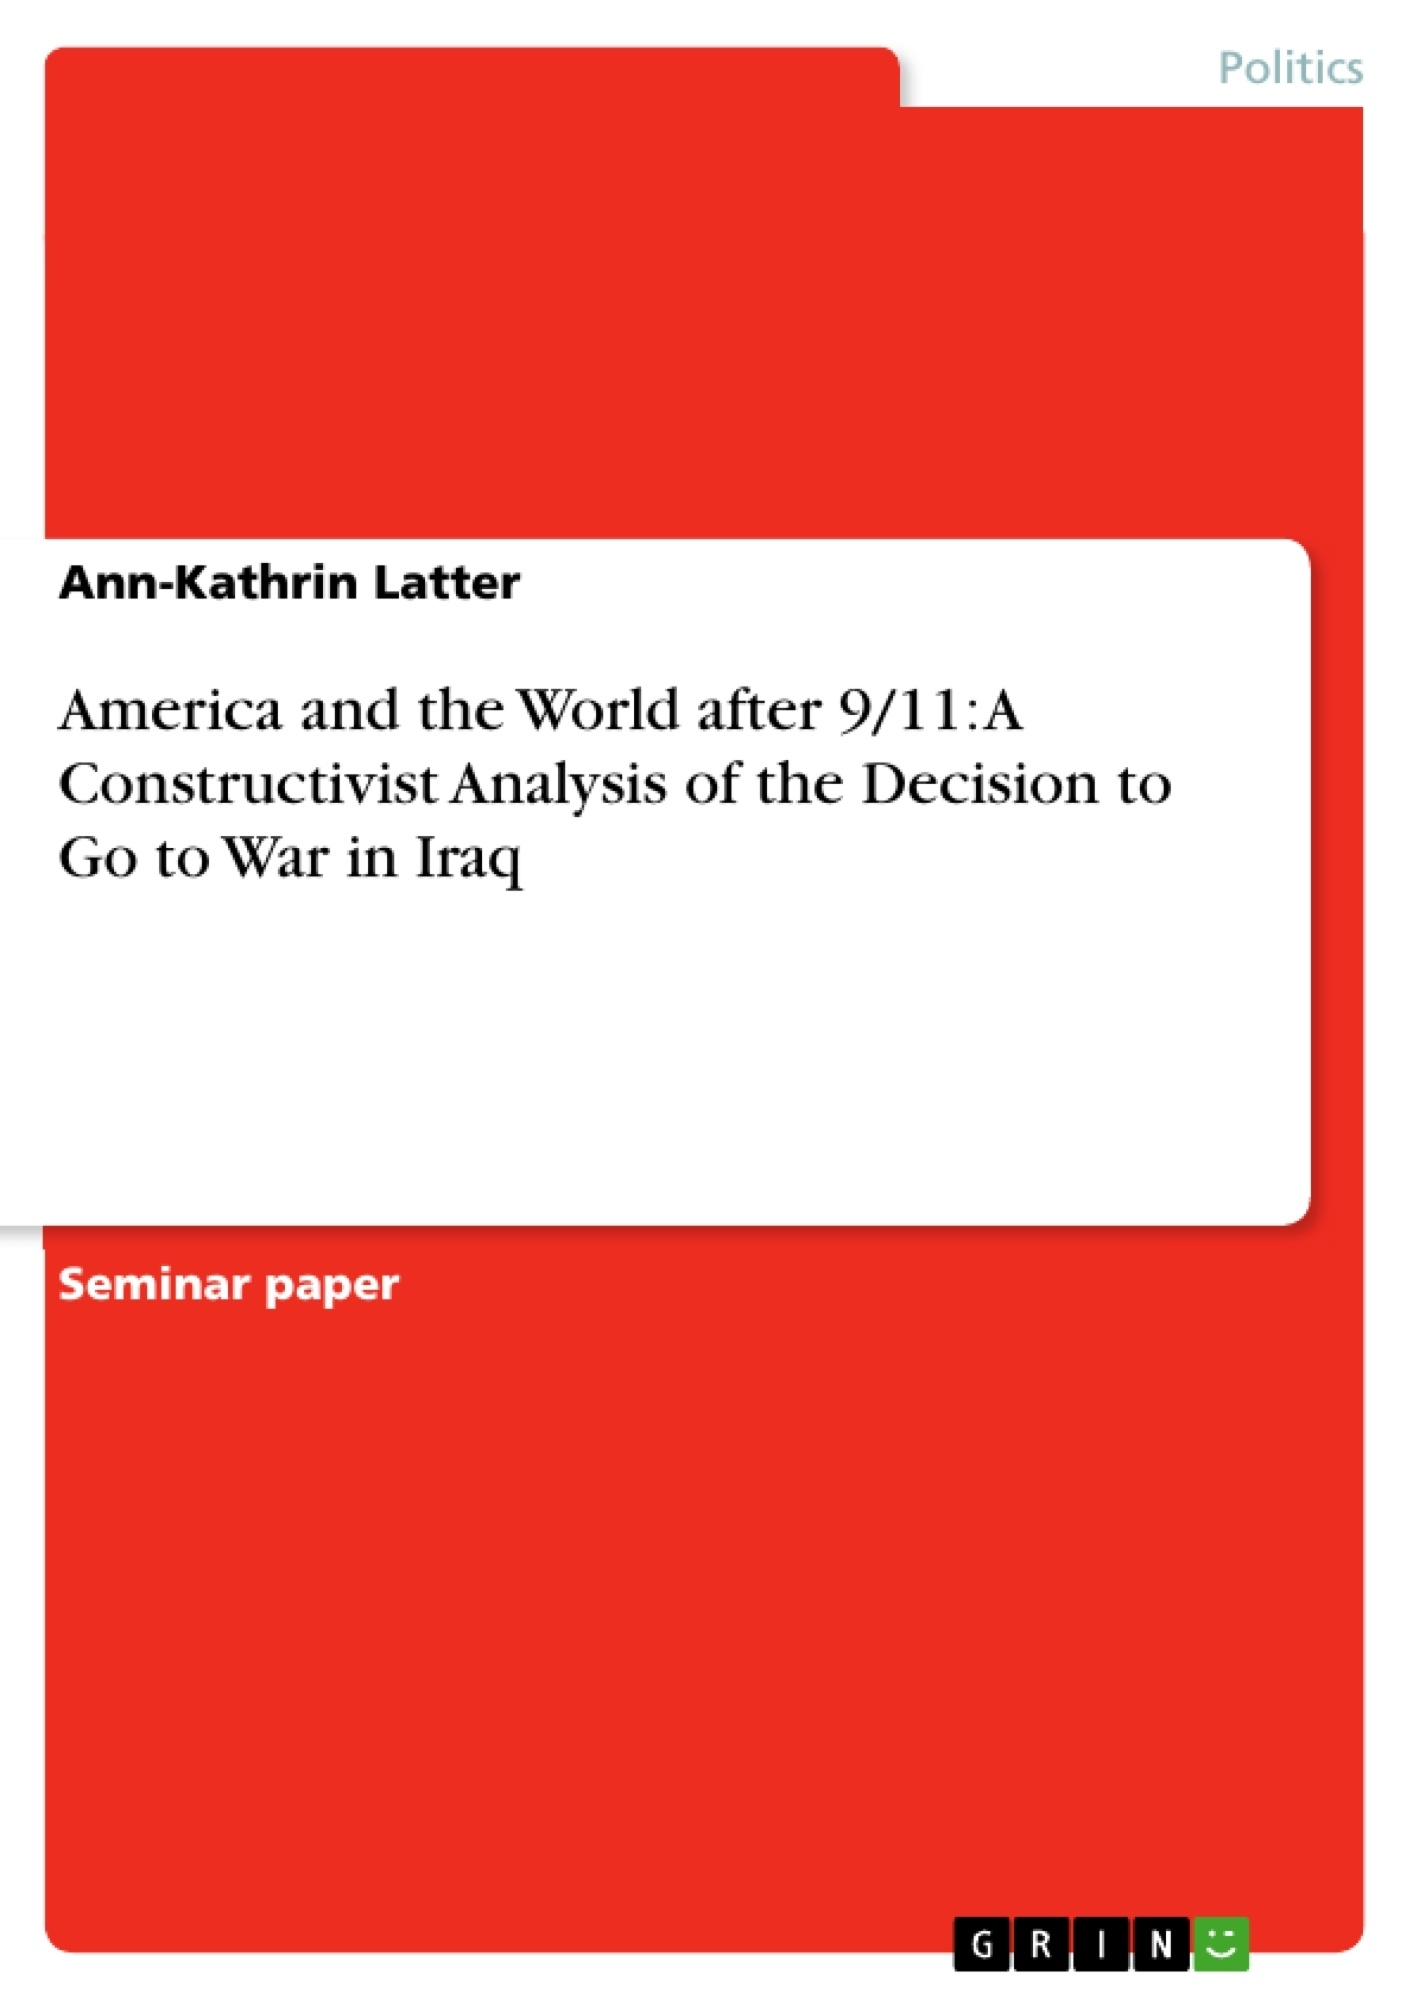 Title: America and the World after 9/11: A Constructivist Analysis of the Decision to Go to War in Iraq